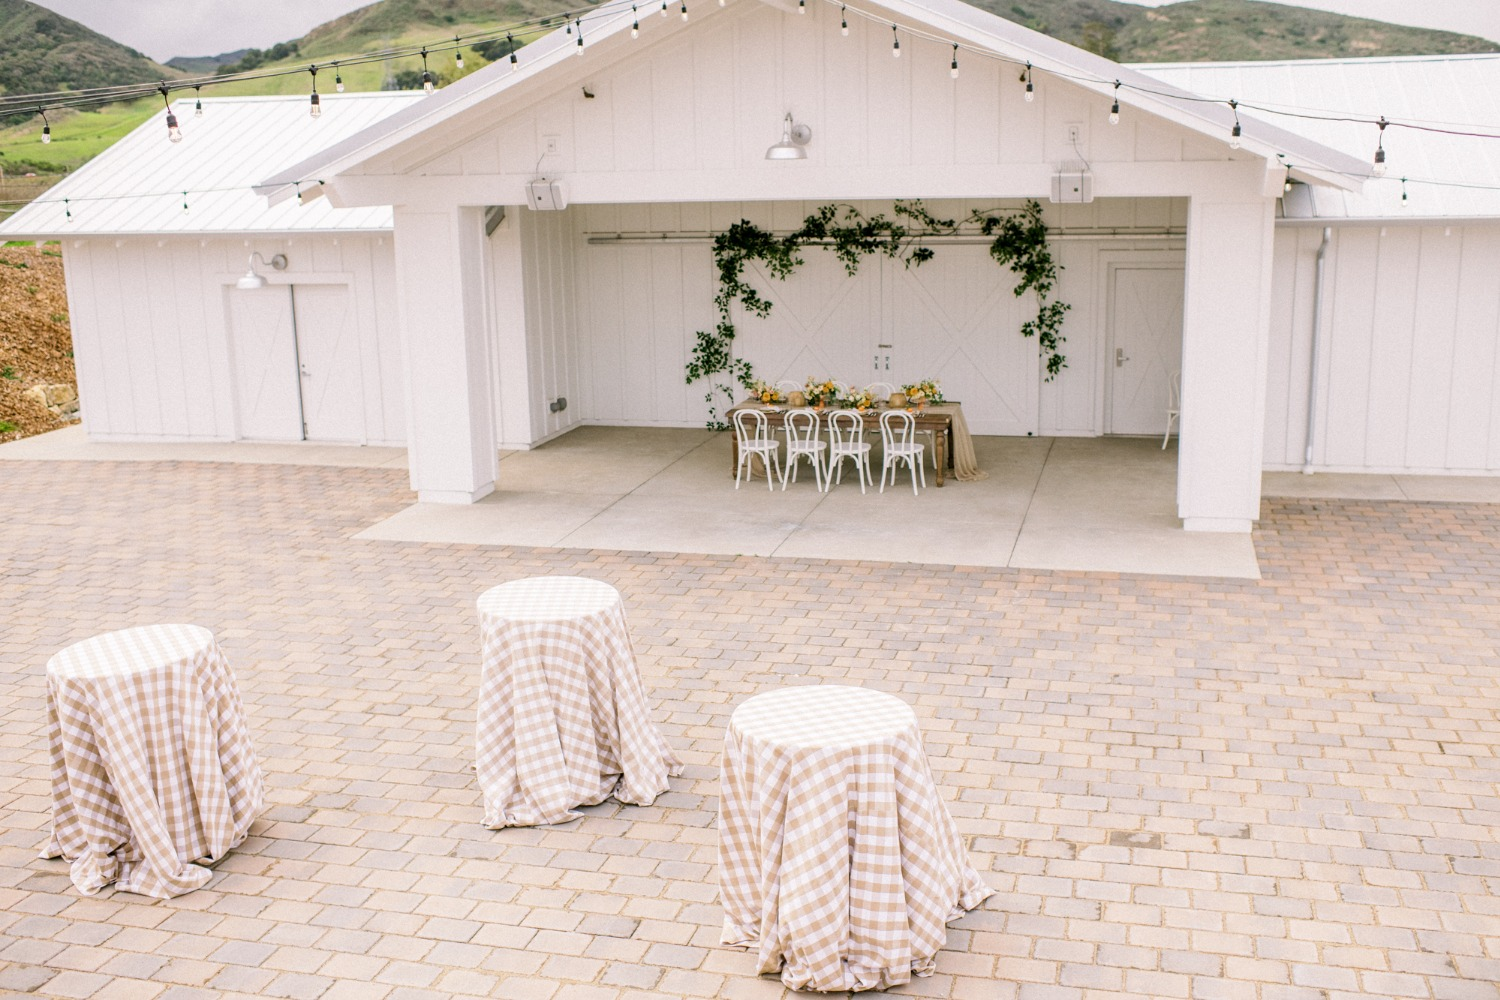 cocktail tables with gingham table cloths